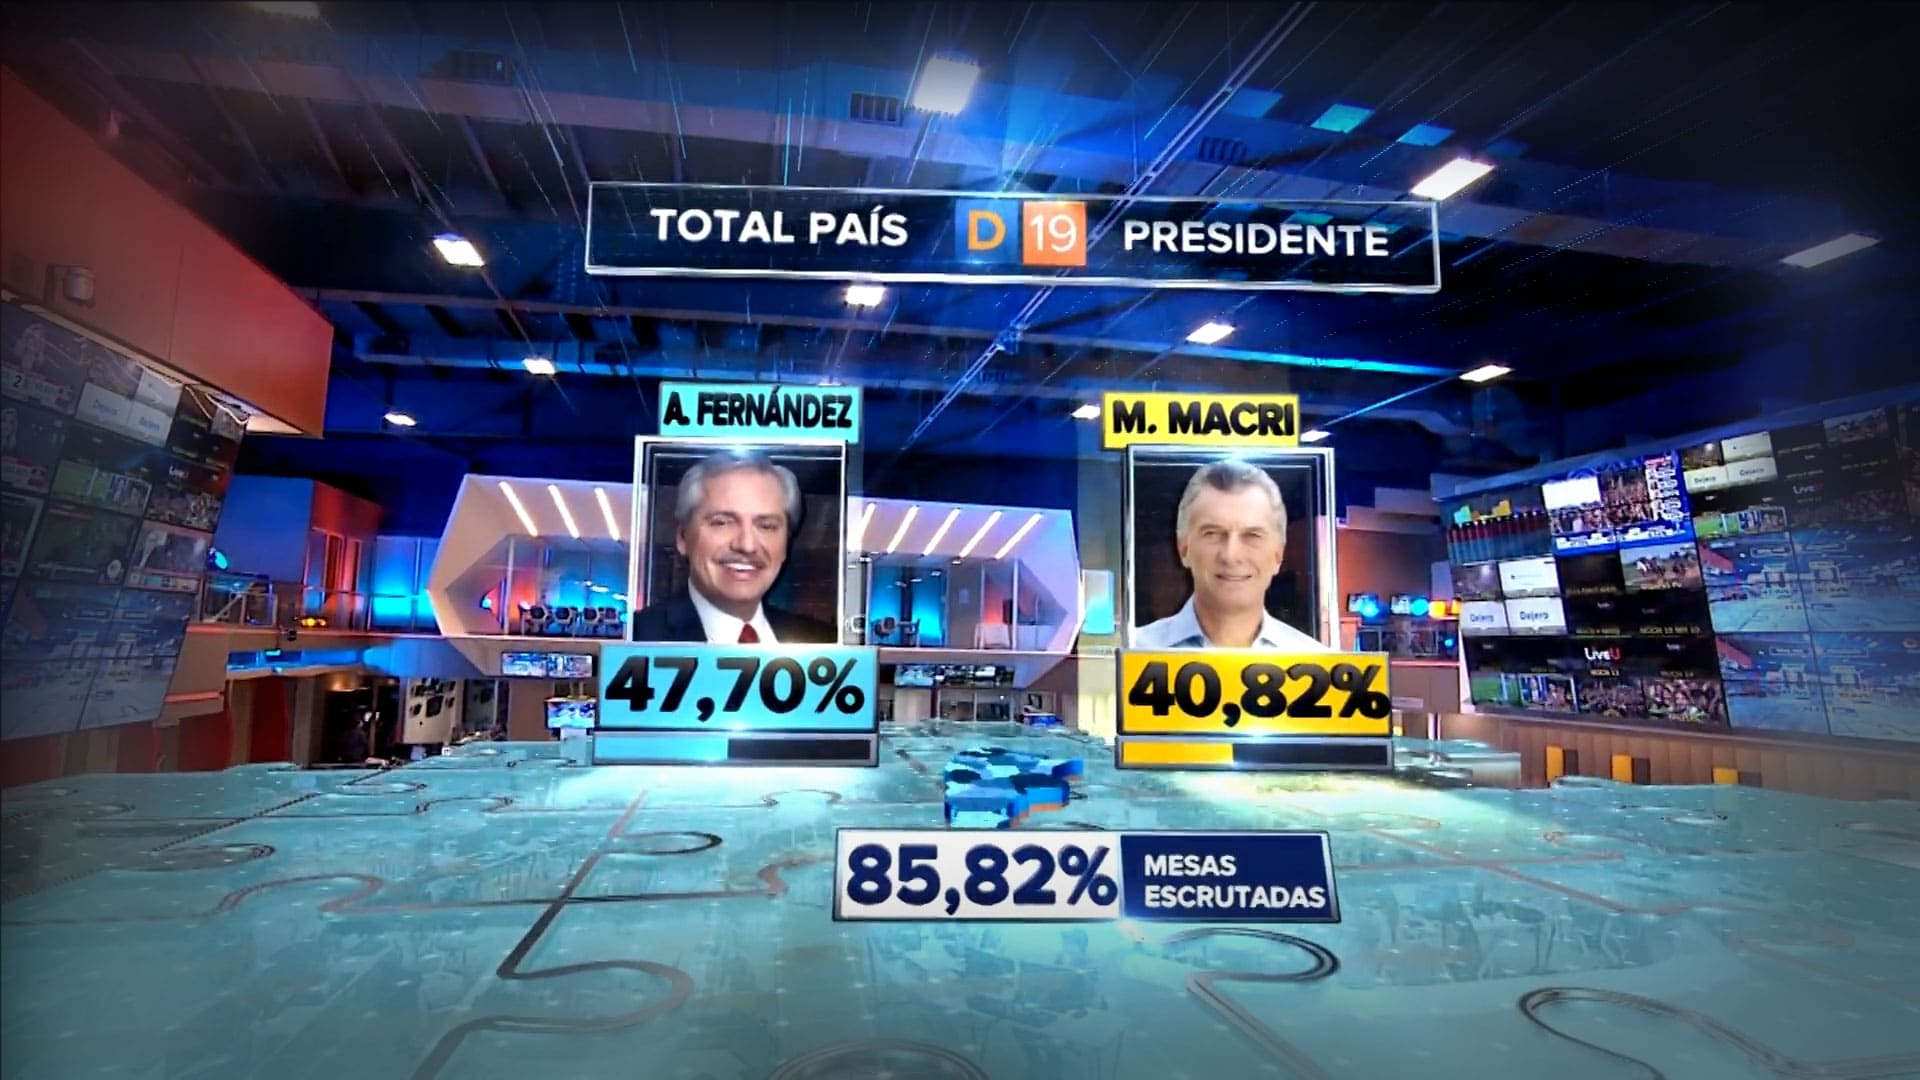 2019 Argentina Presidential Elections Girraphic